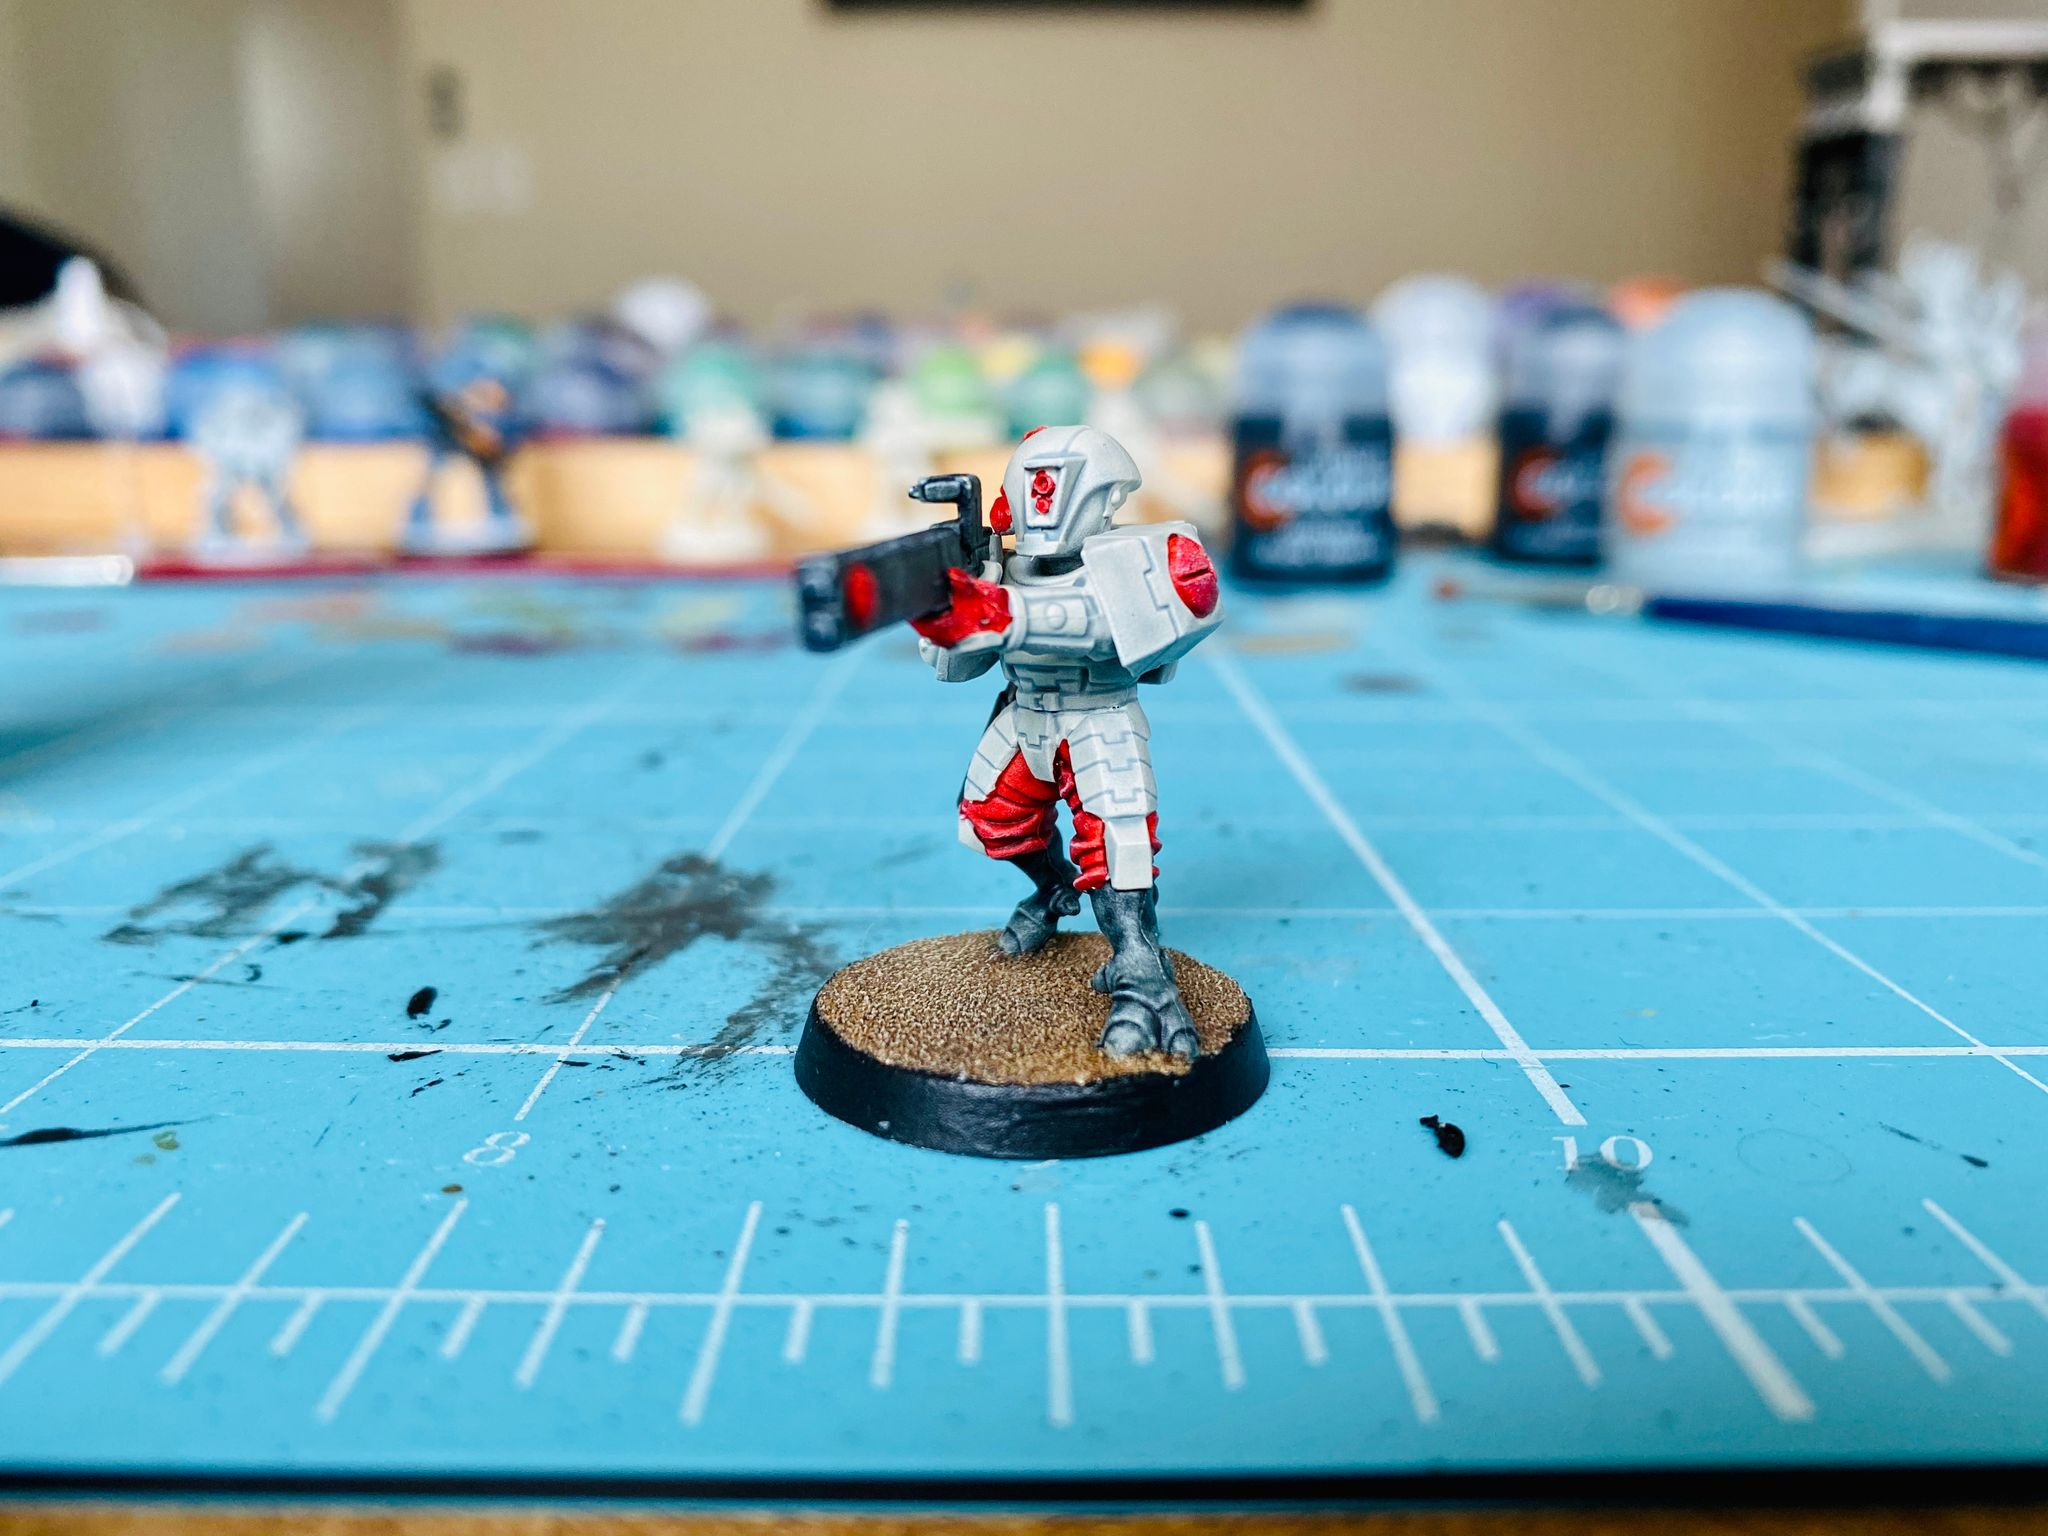 A photo of a Tau Fire Warrior from the Warhammer 40,000 Kill Team box. It has white armour plates and helmet, black feet, and red cloth clothing underneath, and is looking down the barrel of a long black alien-looking laser rifle.